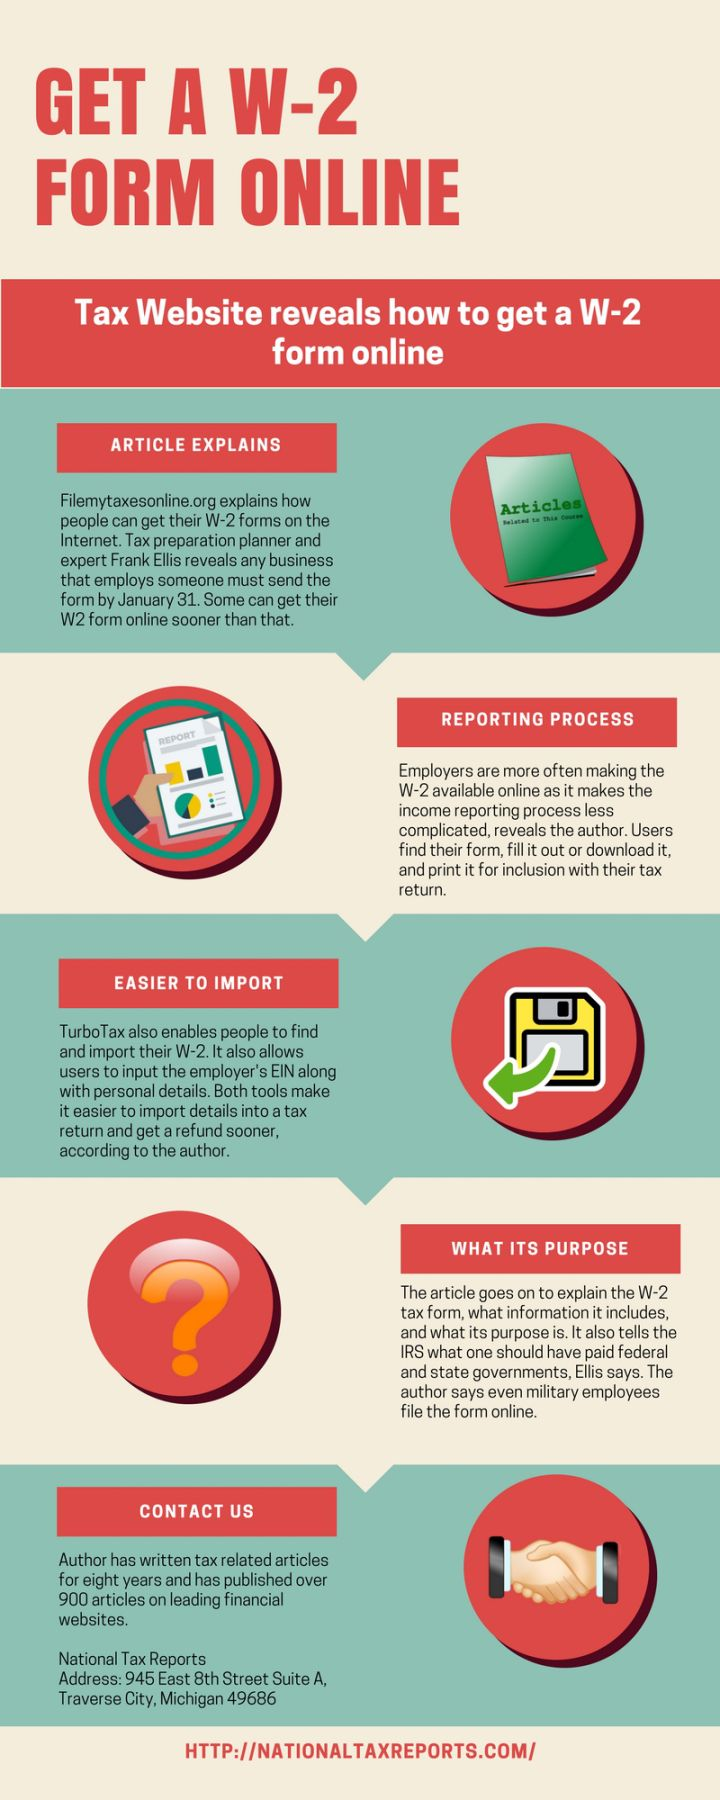 Cute 10 Best Resume Services Thin 10 Tips For Writing A Resume Square 100 Free Resume Builder And Download 1099 Templates Young 15 Year Old Resume Black17 Worst Things To Say On Your Resume Business Insider 25  Best Ideas About Employee Tax Forms On Pinterest | In Home ..